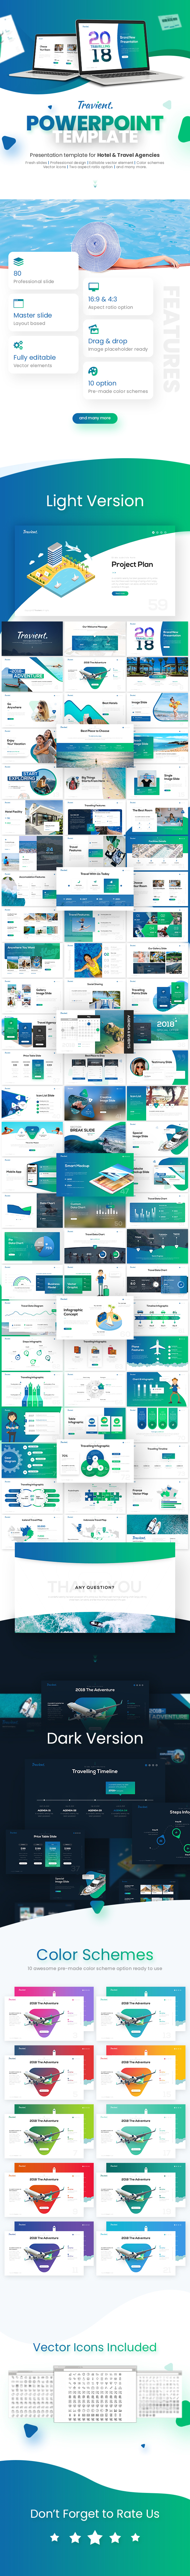 Travient Hotel & Travel Agency PowerPoint Template - PowerPoint Templates Presentation Templates